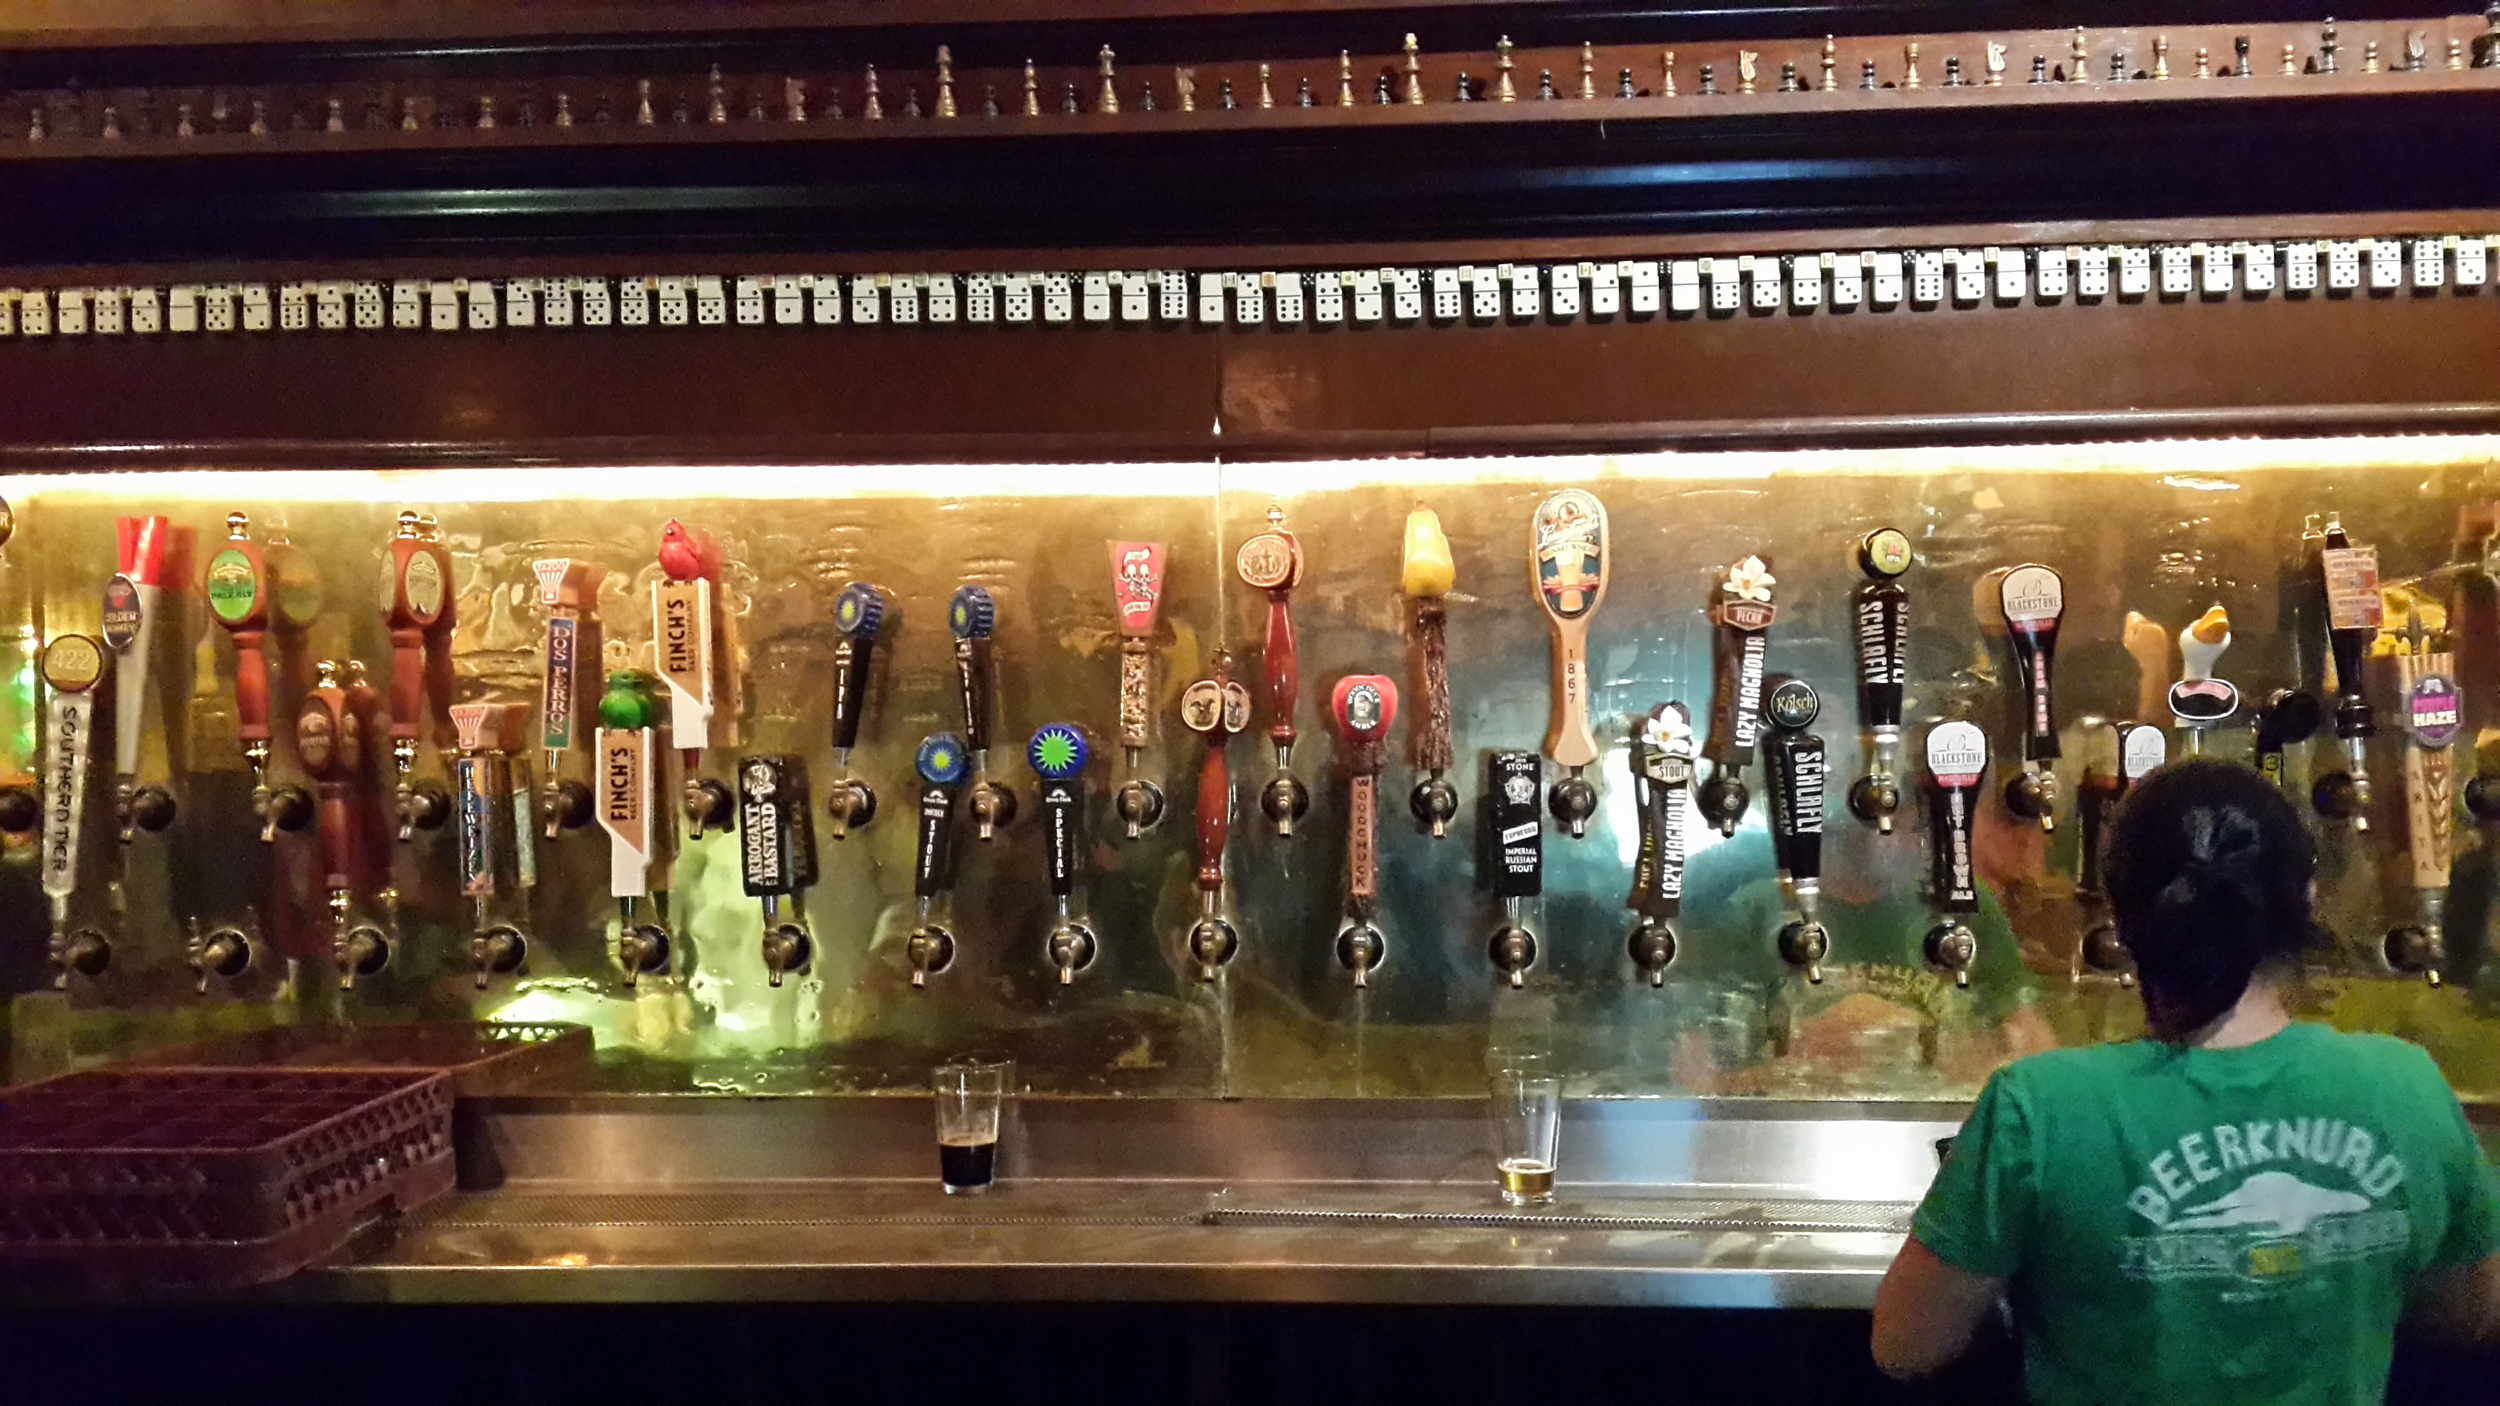 My, what a lot of taps you have...